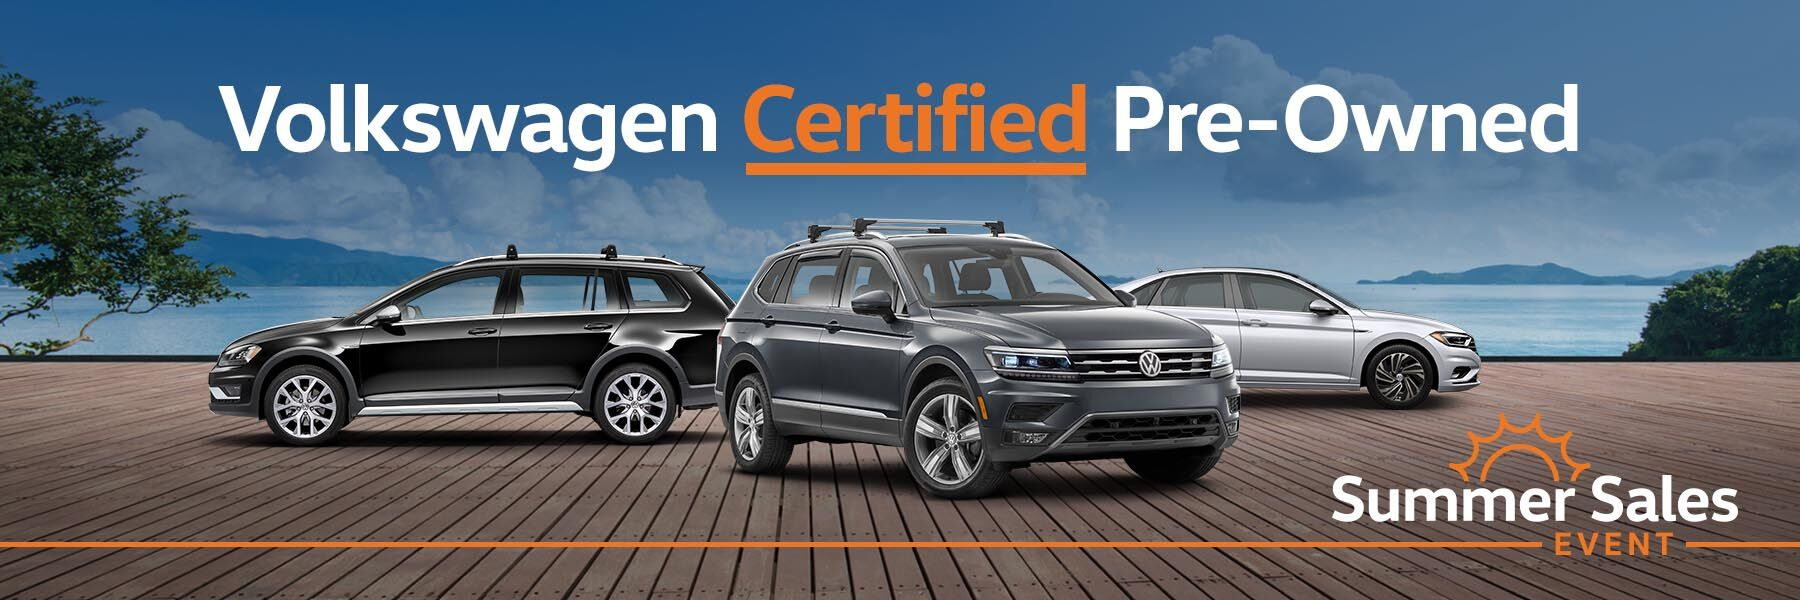 Volkswagen Certified Pre-Owned in Murfreesboro, TN